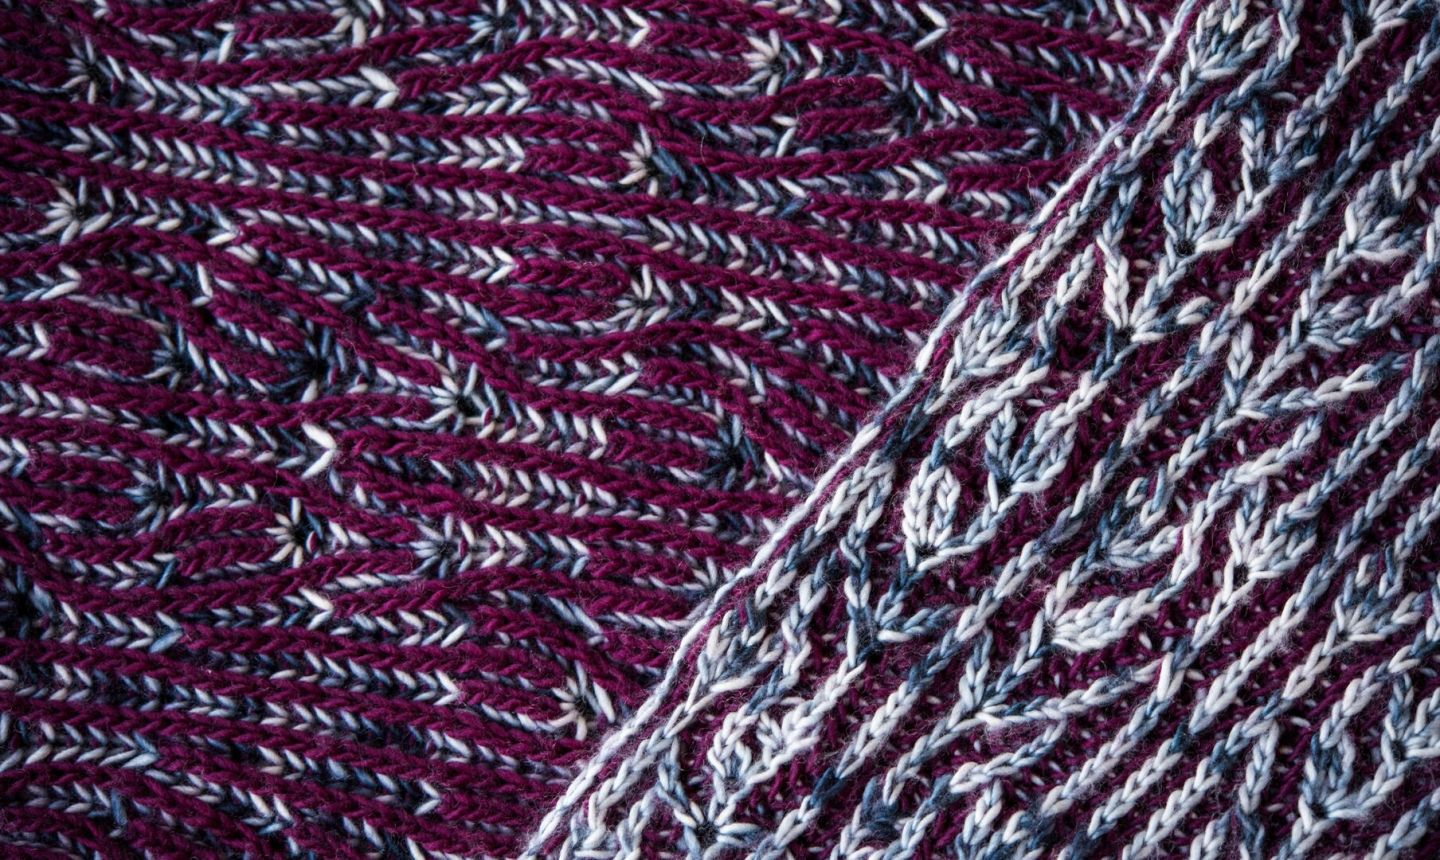 purple brioche knitting details